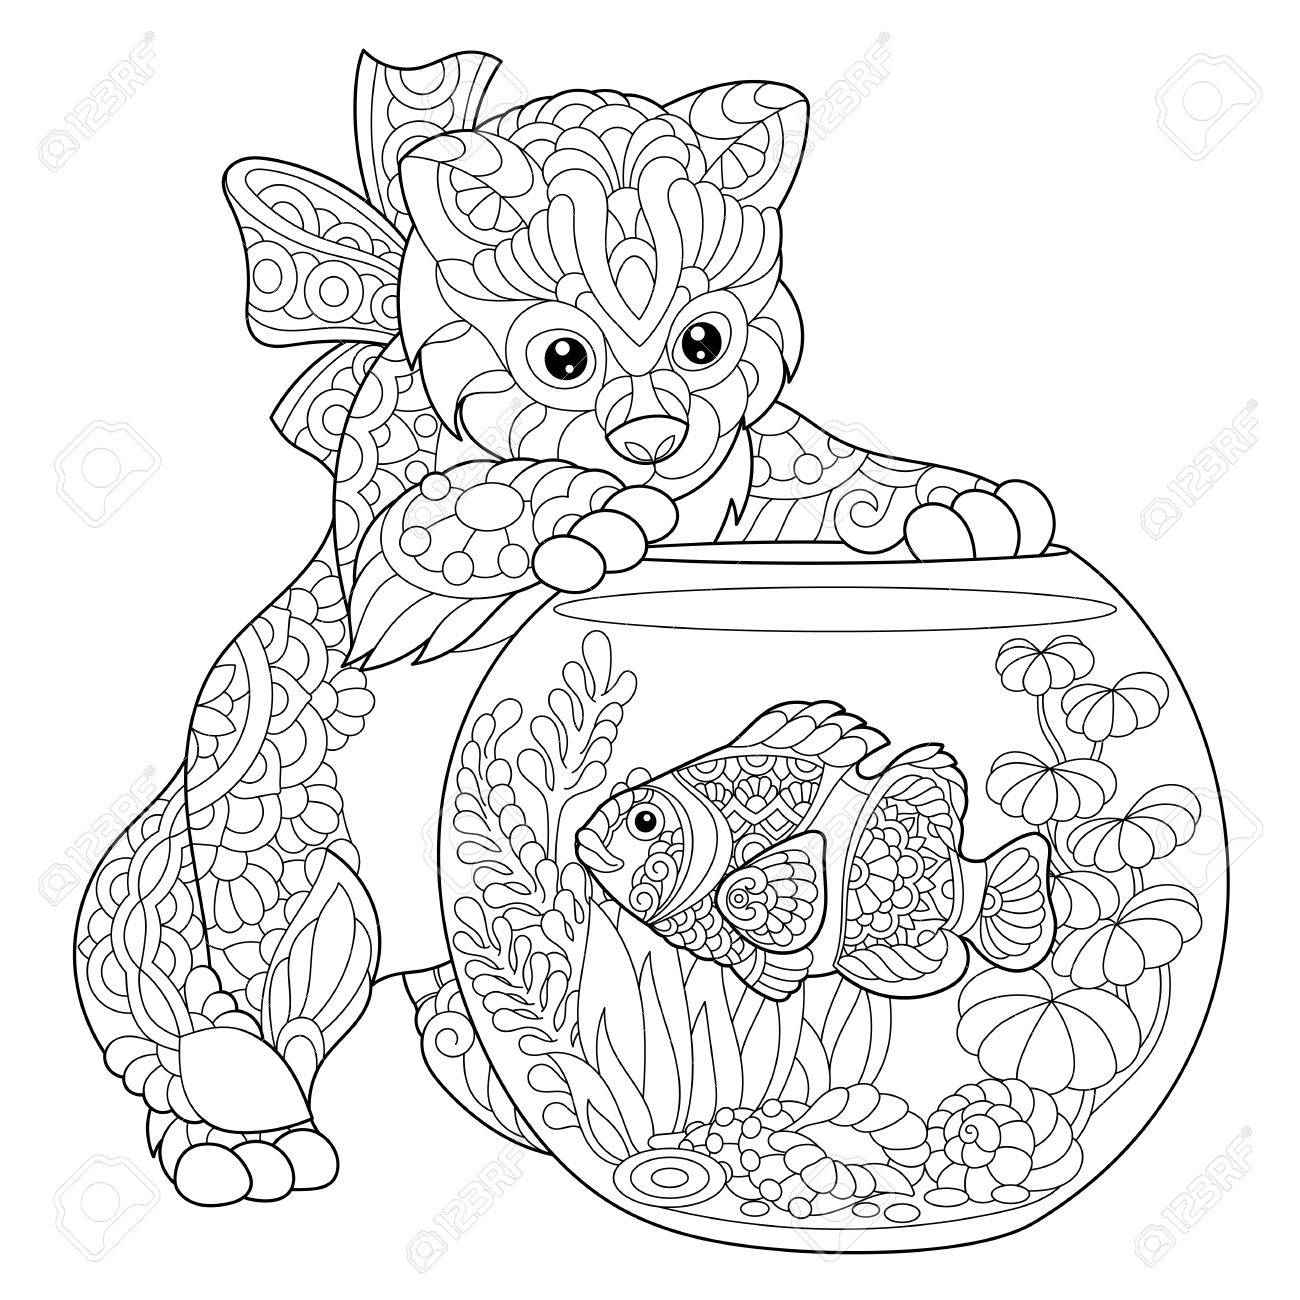 Coloring Page Of Kitten Playing With Clown Fish In Aquarium ...